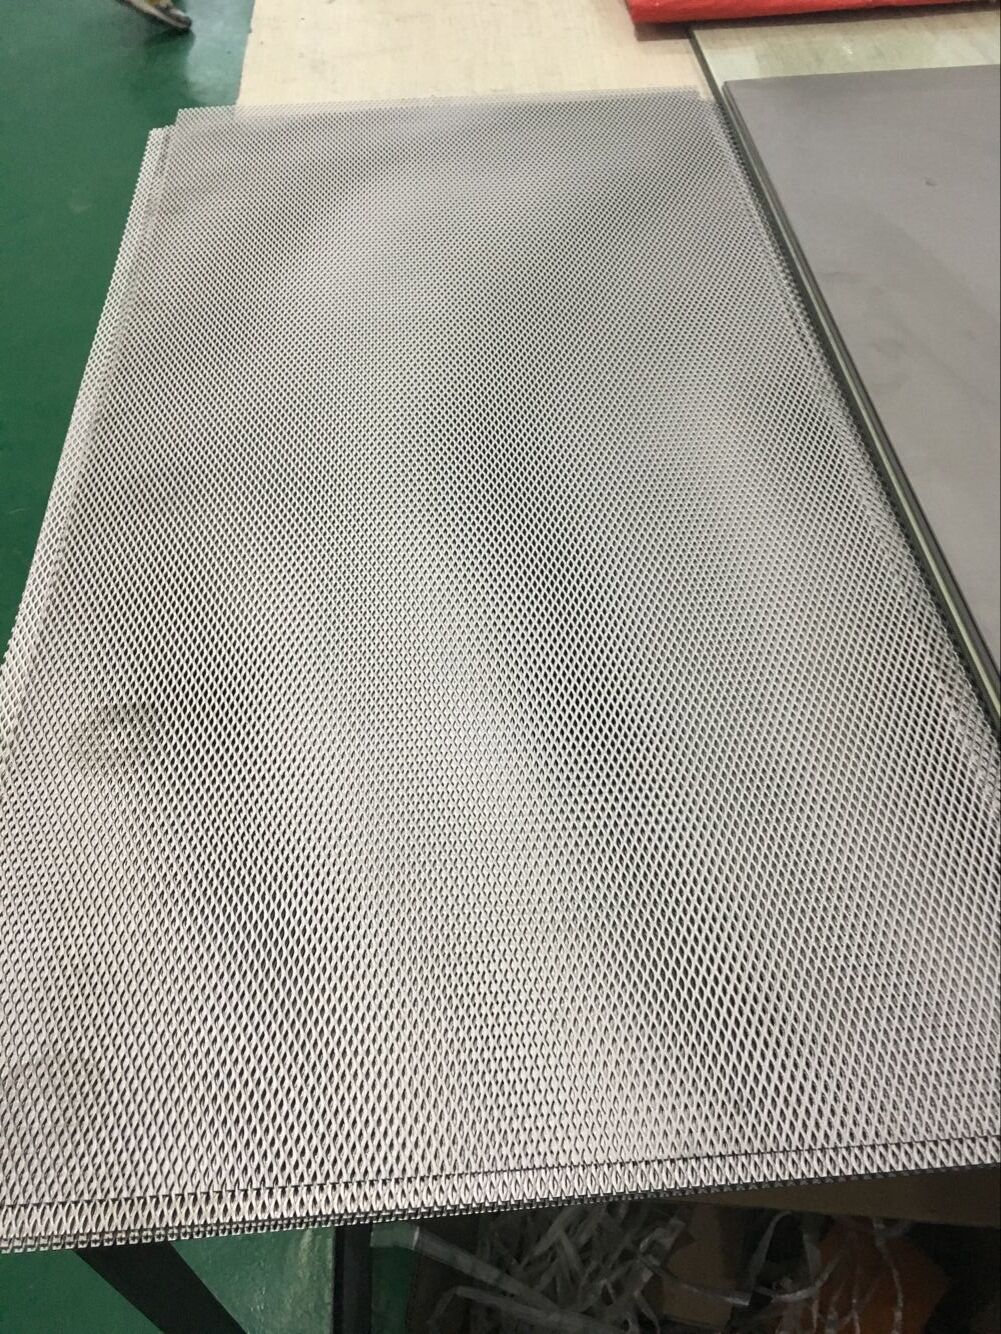 Grade 1 Pure titanium mesh sheet customized size